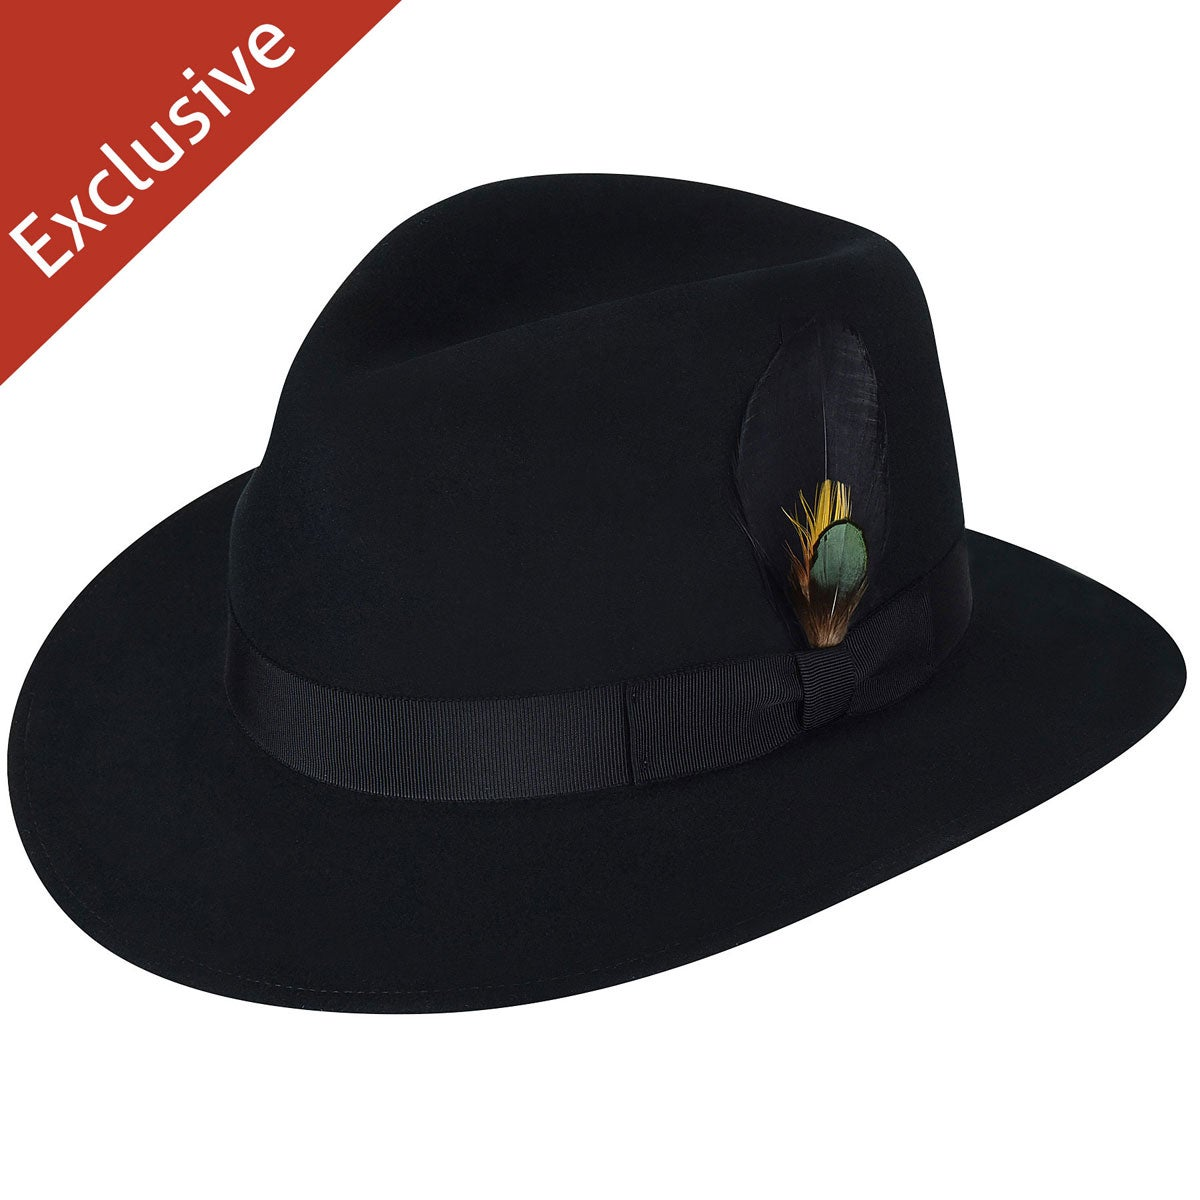 1940s Mens Hats | Fedora, Homburg, Pork Pie Hats Jeff K. Fedora - Exclusive $200.00 AT vintagedancer.com